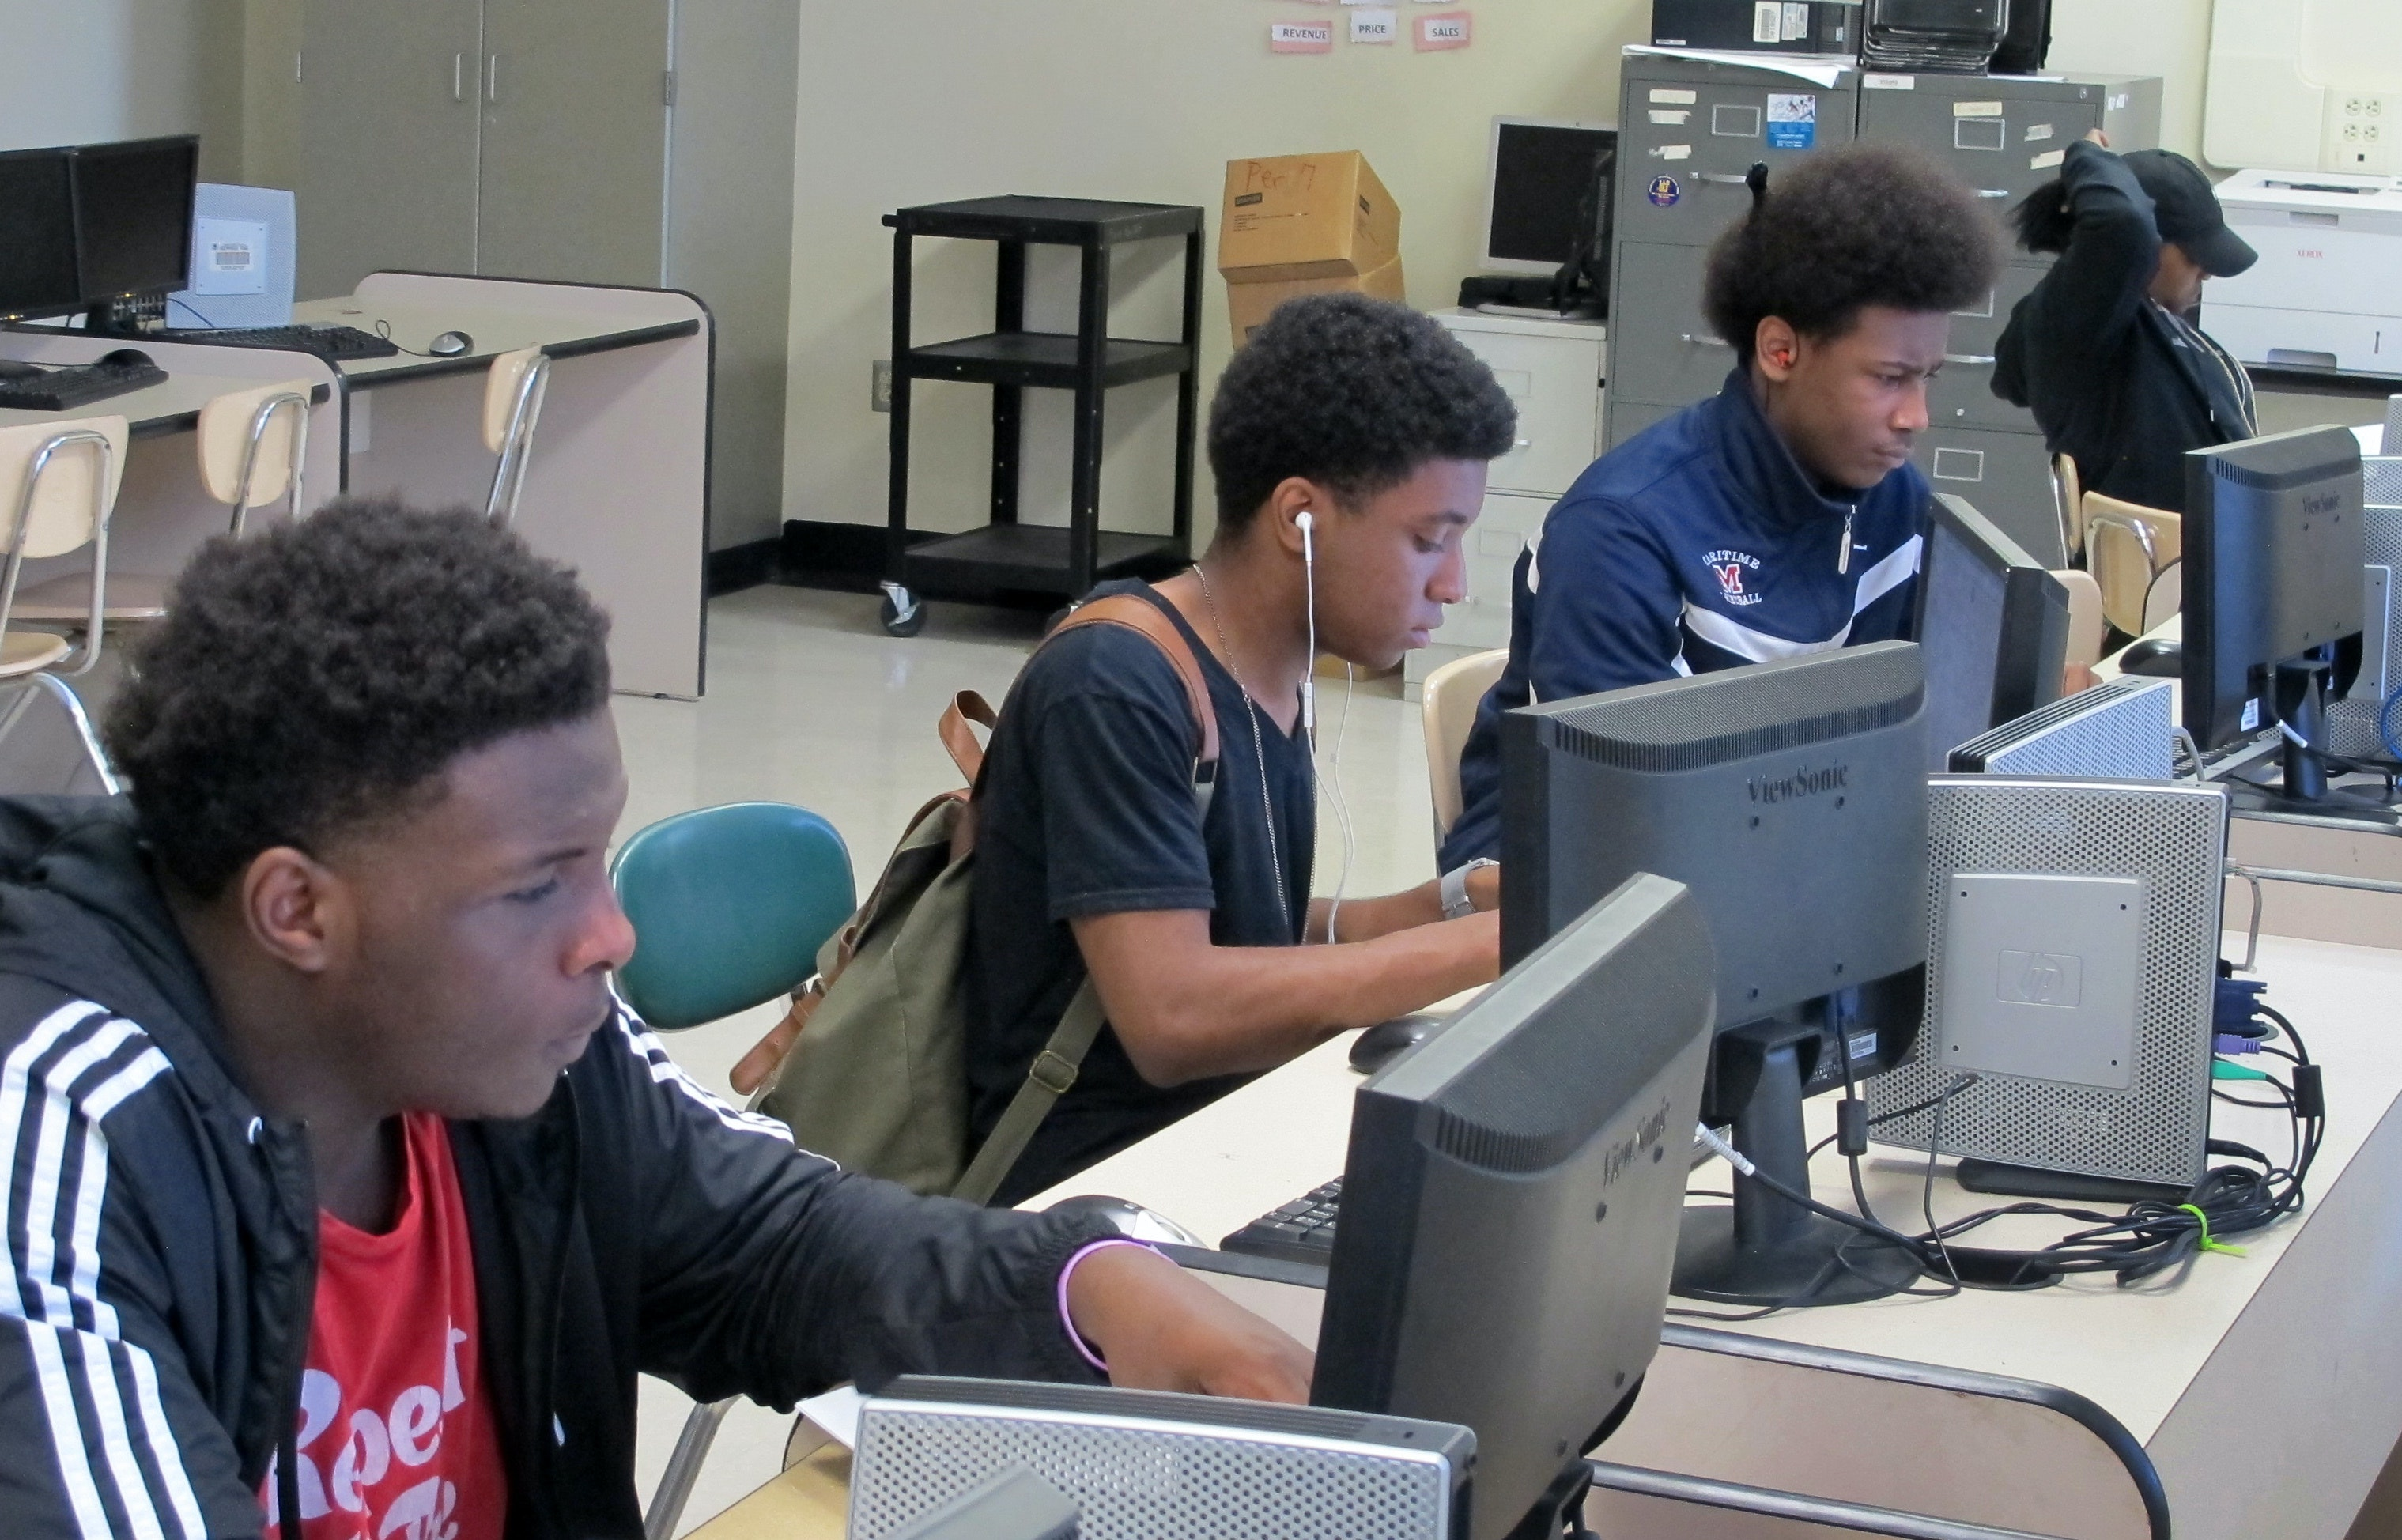 high school to college journal Essay on compare and contrast high school versus college - it is a big step from high school to college the goal of this paper is to help prepare you by sharing, from personal experience, what to expect in the transition.